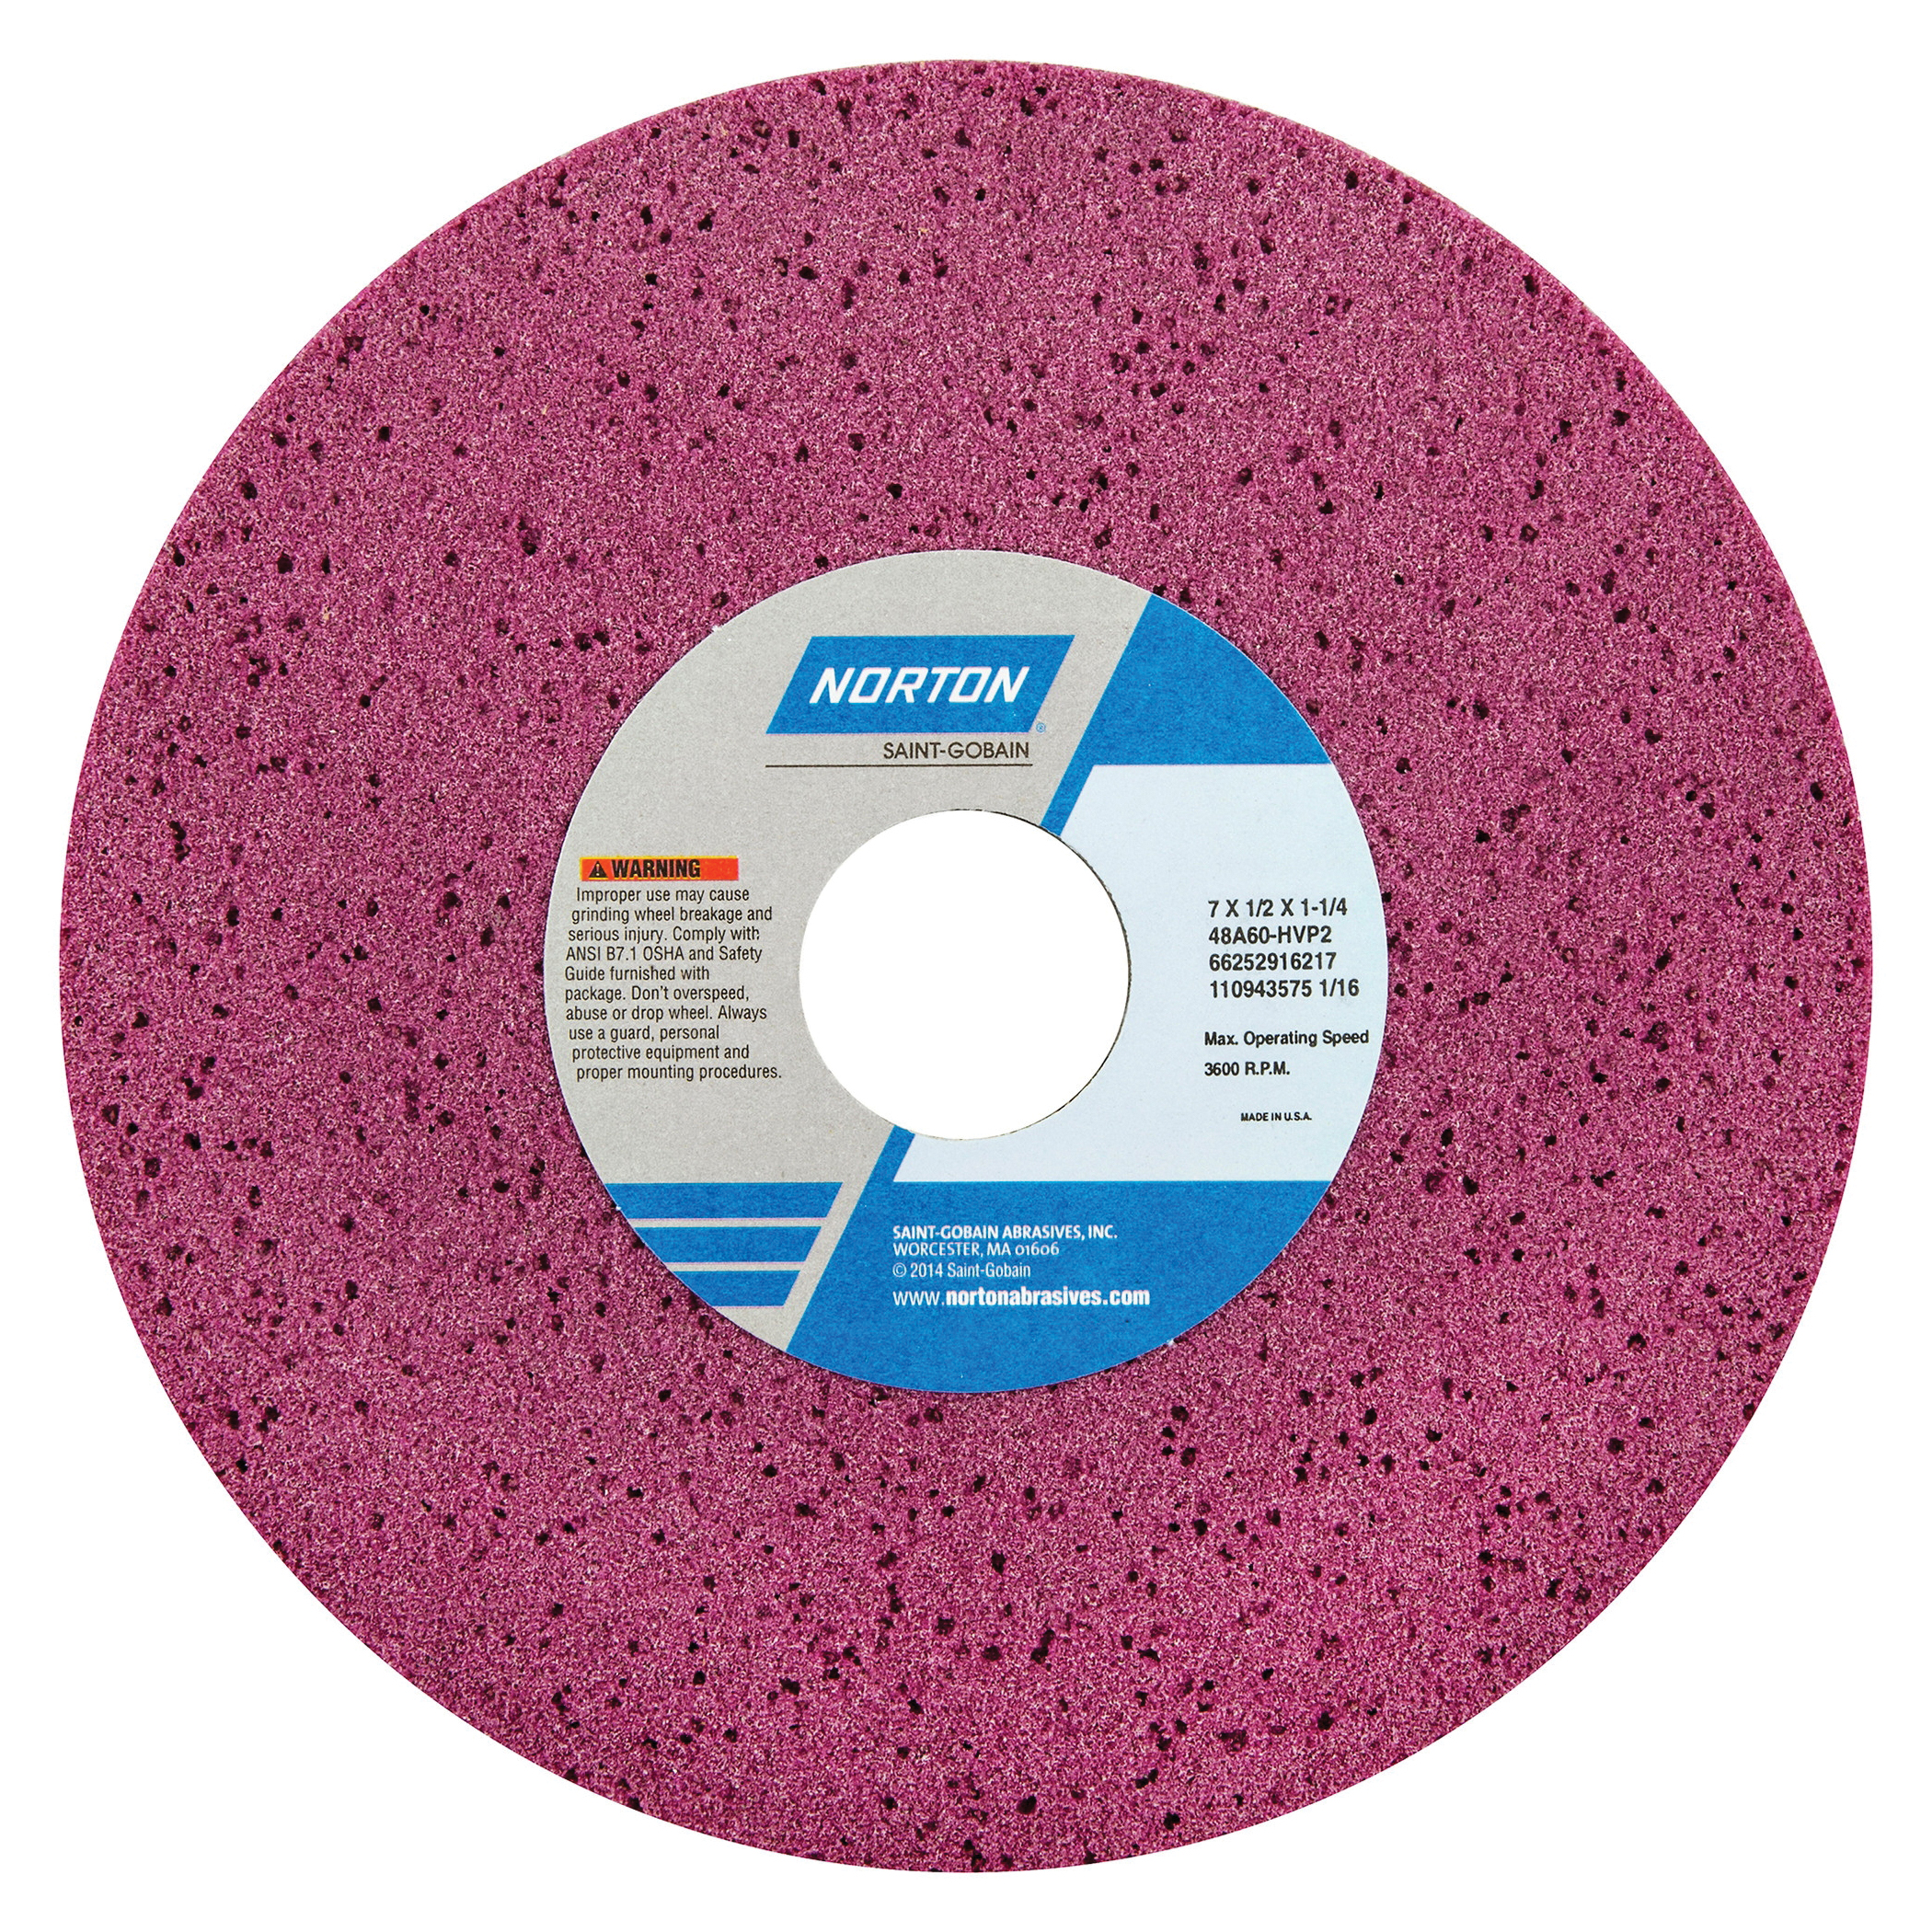 Norton® 66252916217 48A Straight Toolroom Wheel, 7 in Dia x 1/2 in THK, 1-1/4 in Center Hole, 60 Grit, Aluminum Oxide Abrasive